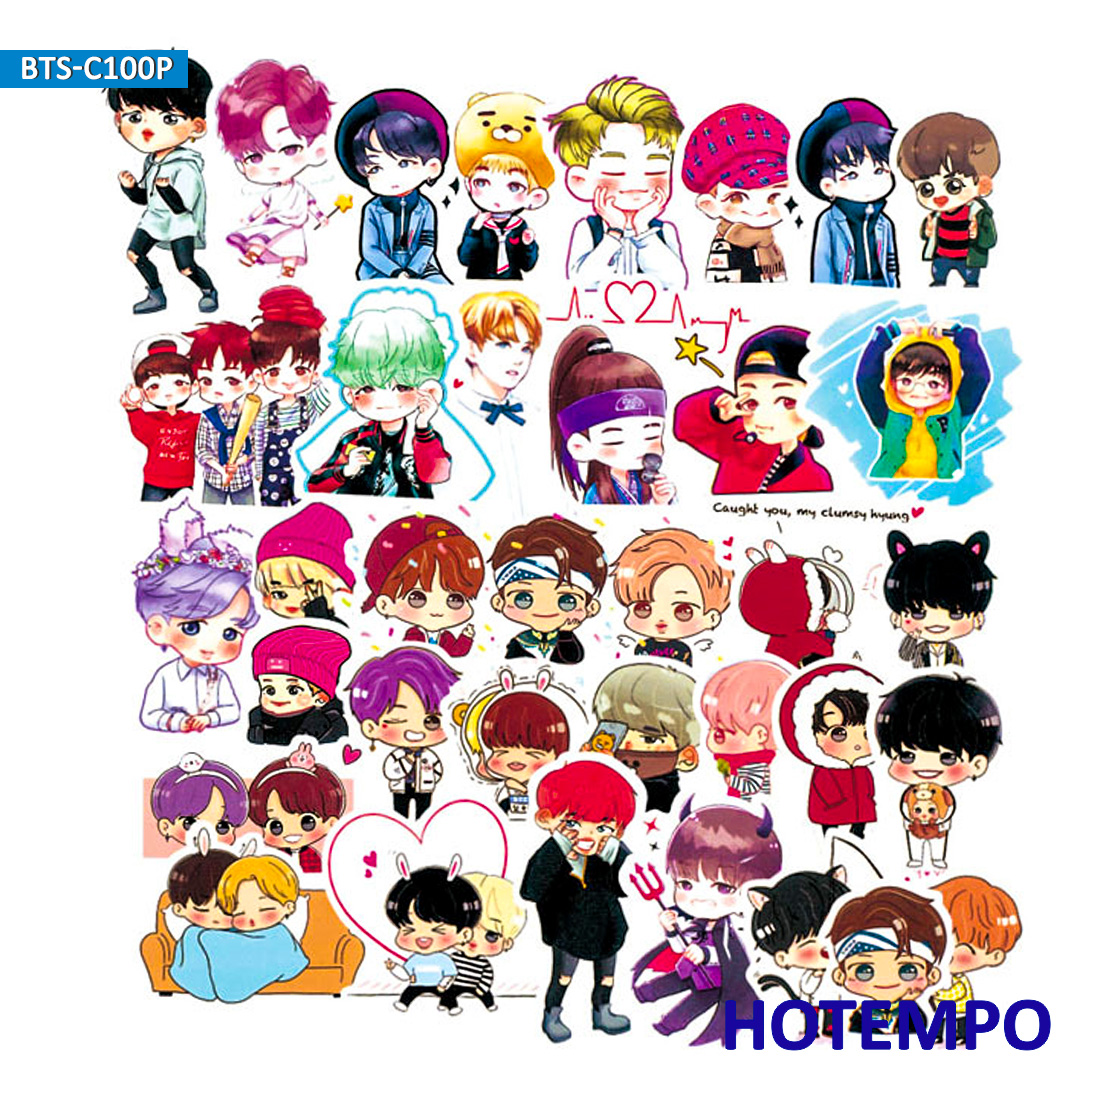 100pcs Fashion Kpop Stickers Boy Men Team For Girl Kids Gift DIY Letter Diary Scrapbooking Stationery Phone Case PVC Stickers